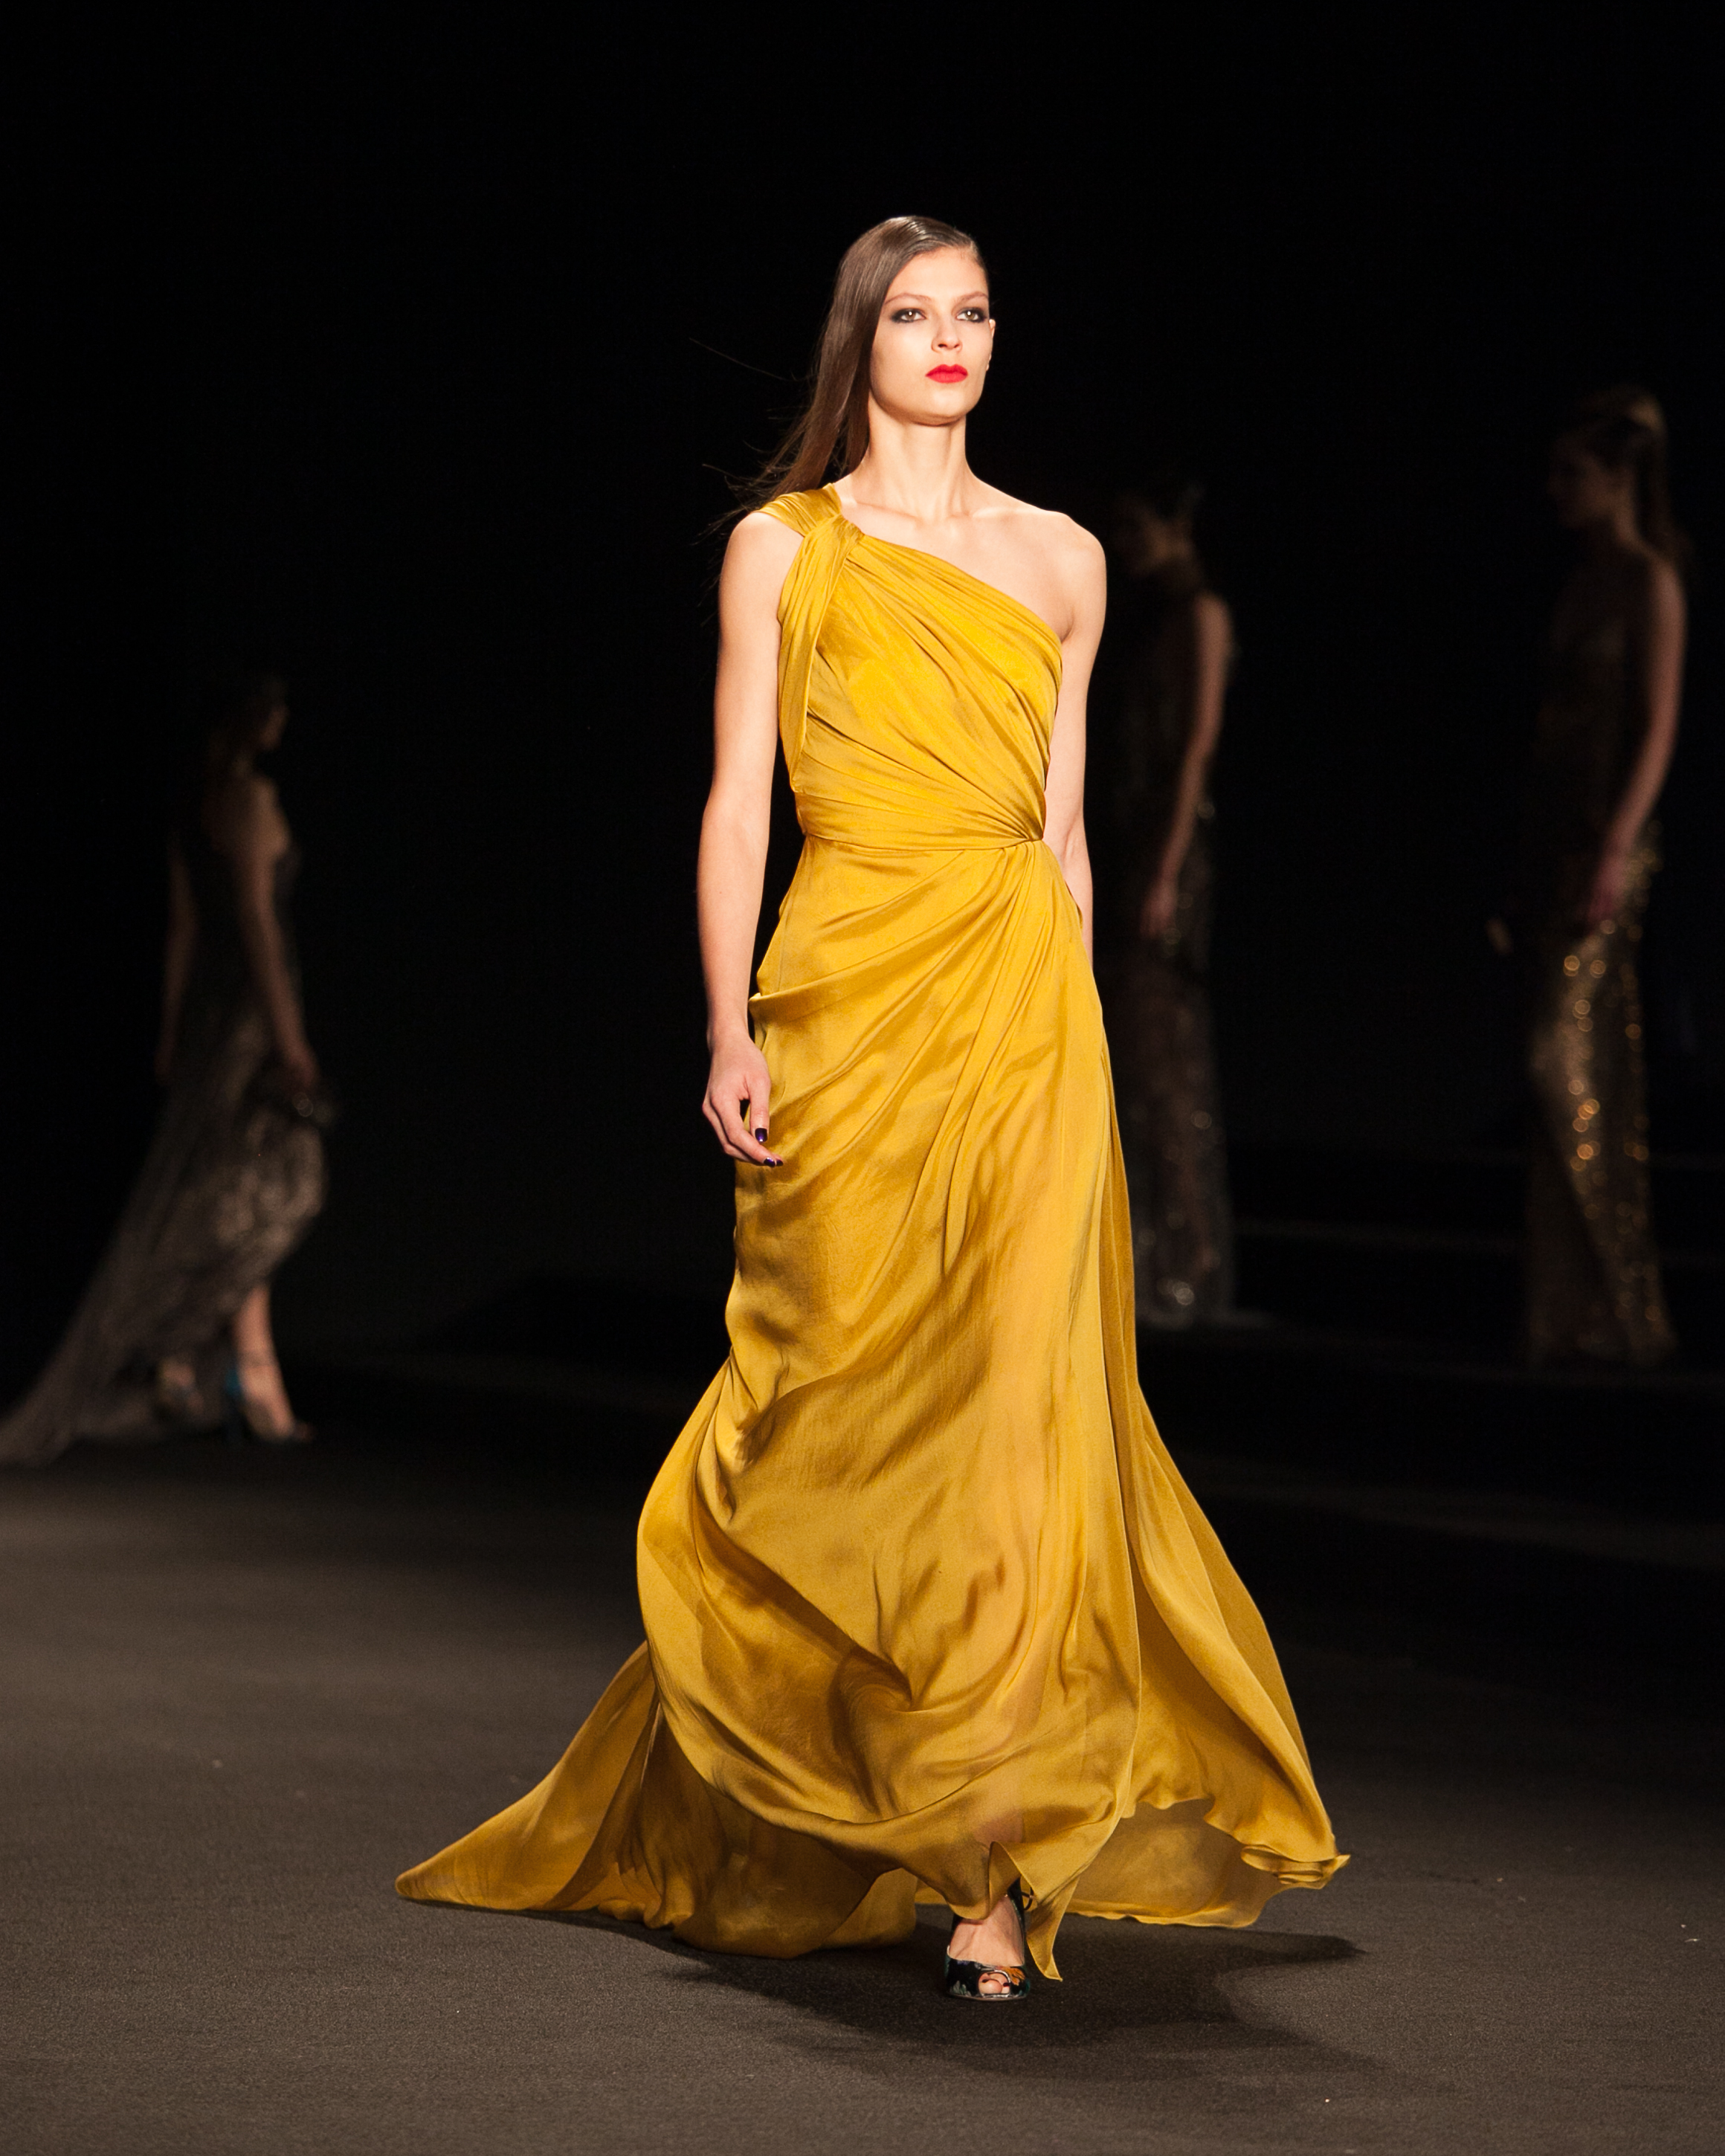 005-Monique-Lhuiller-New-York-Fashion-Week-Fall-Winter-2015-Shana-Schnur-Photography-005.jpg